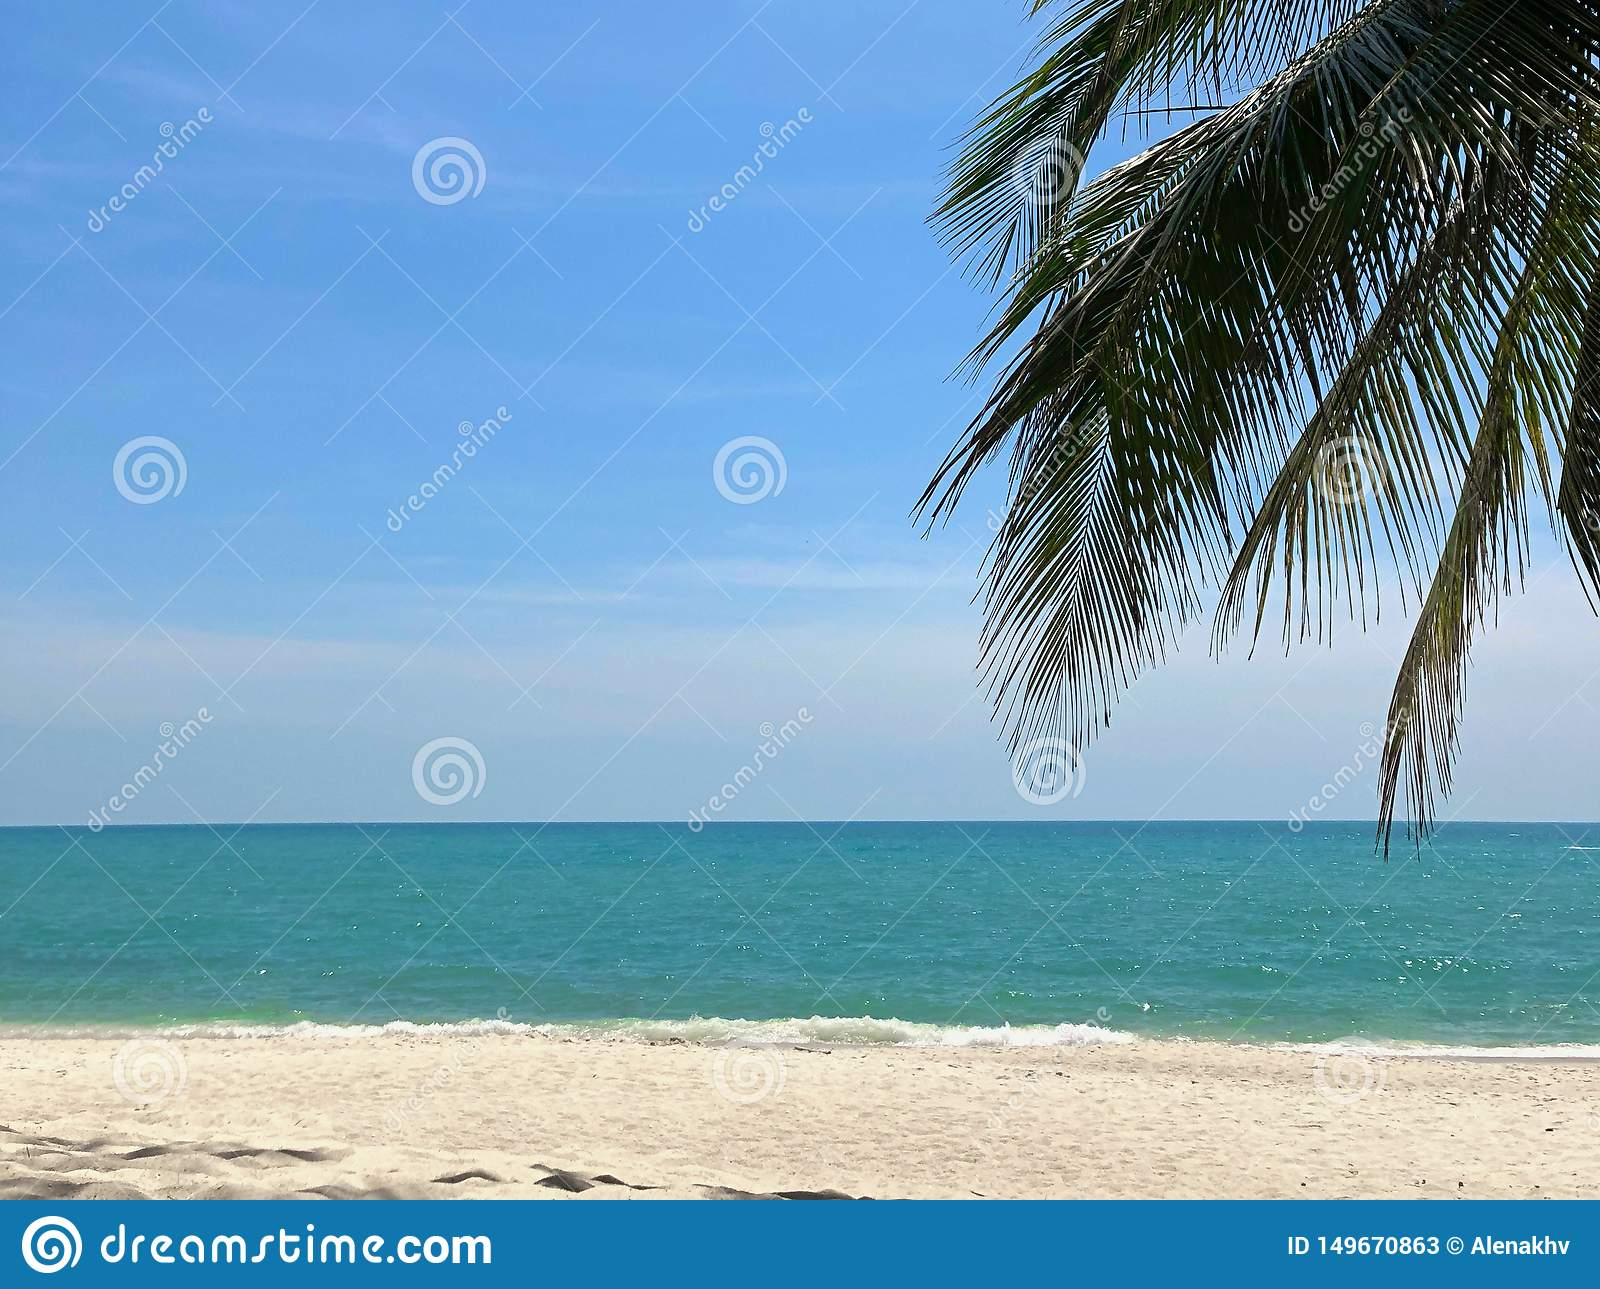 Palm branch against a blue sky, turquoise sea and white sand